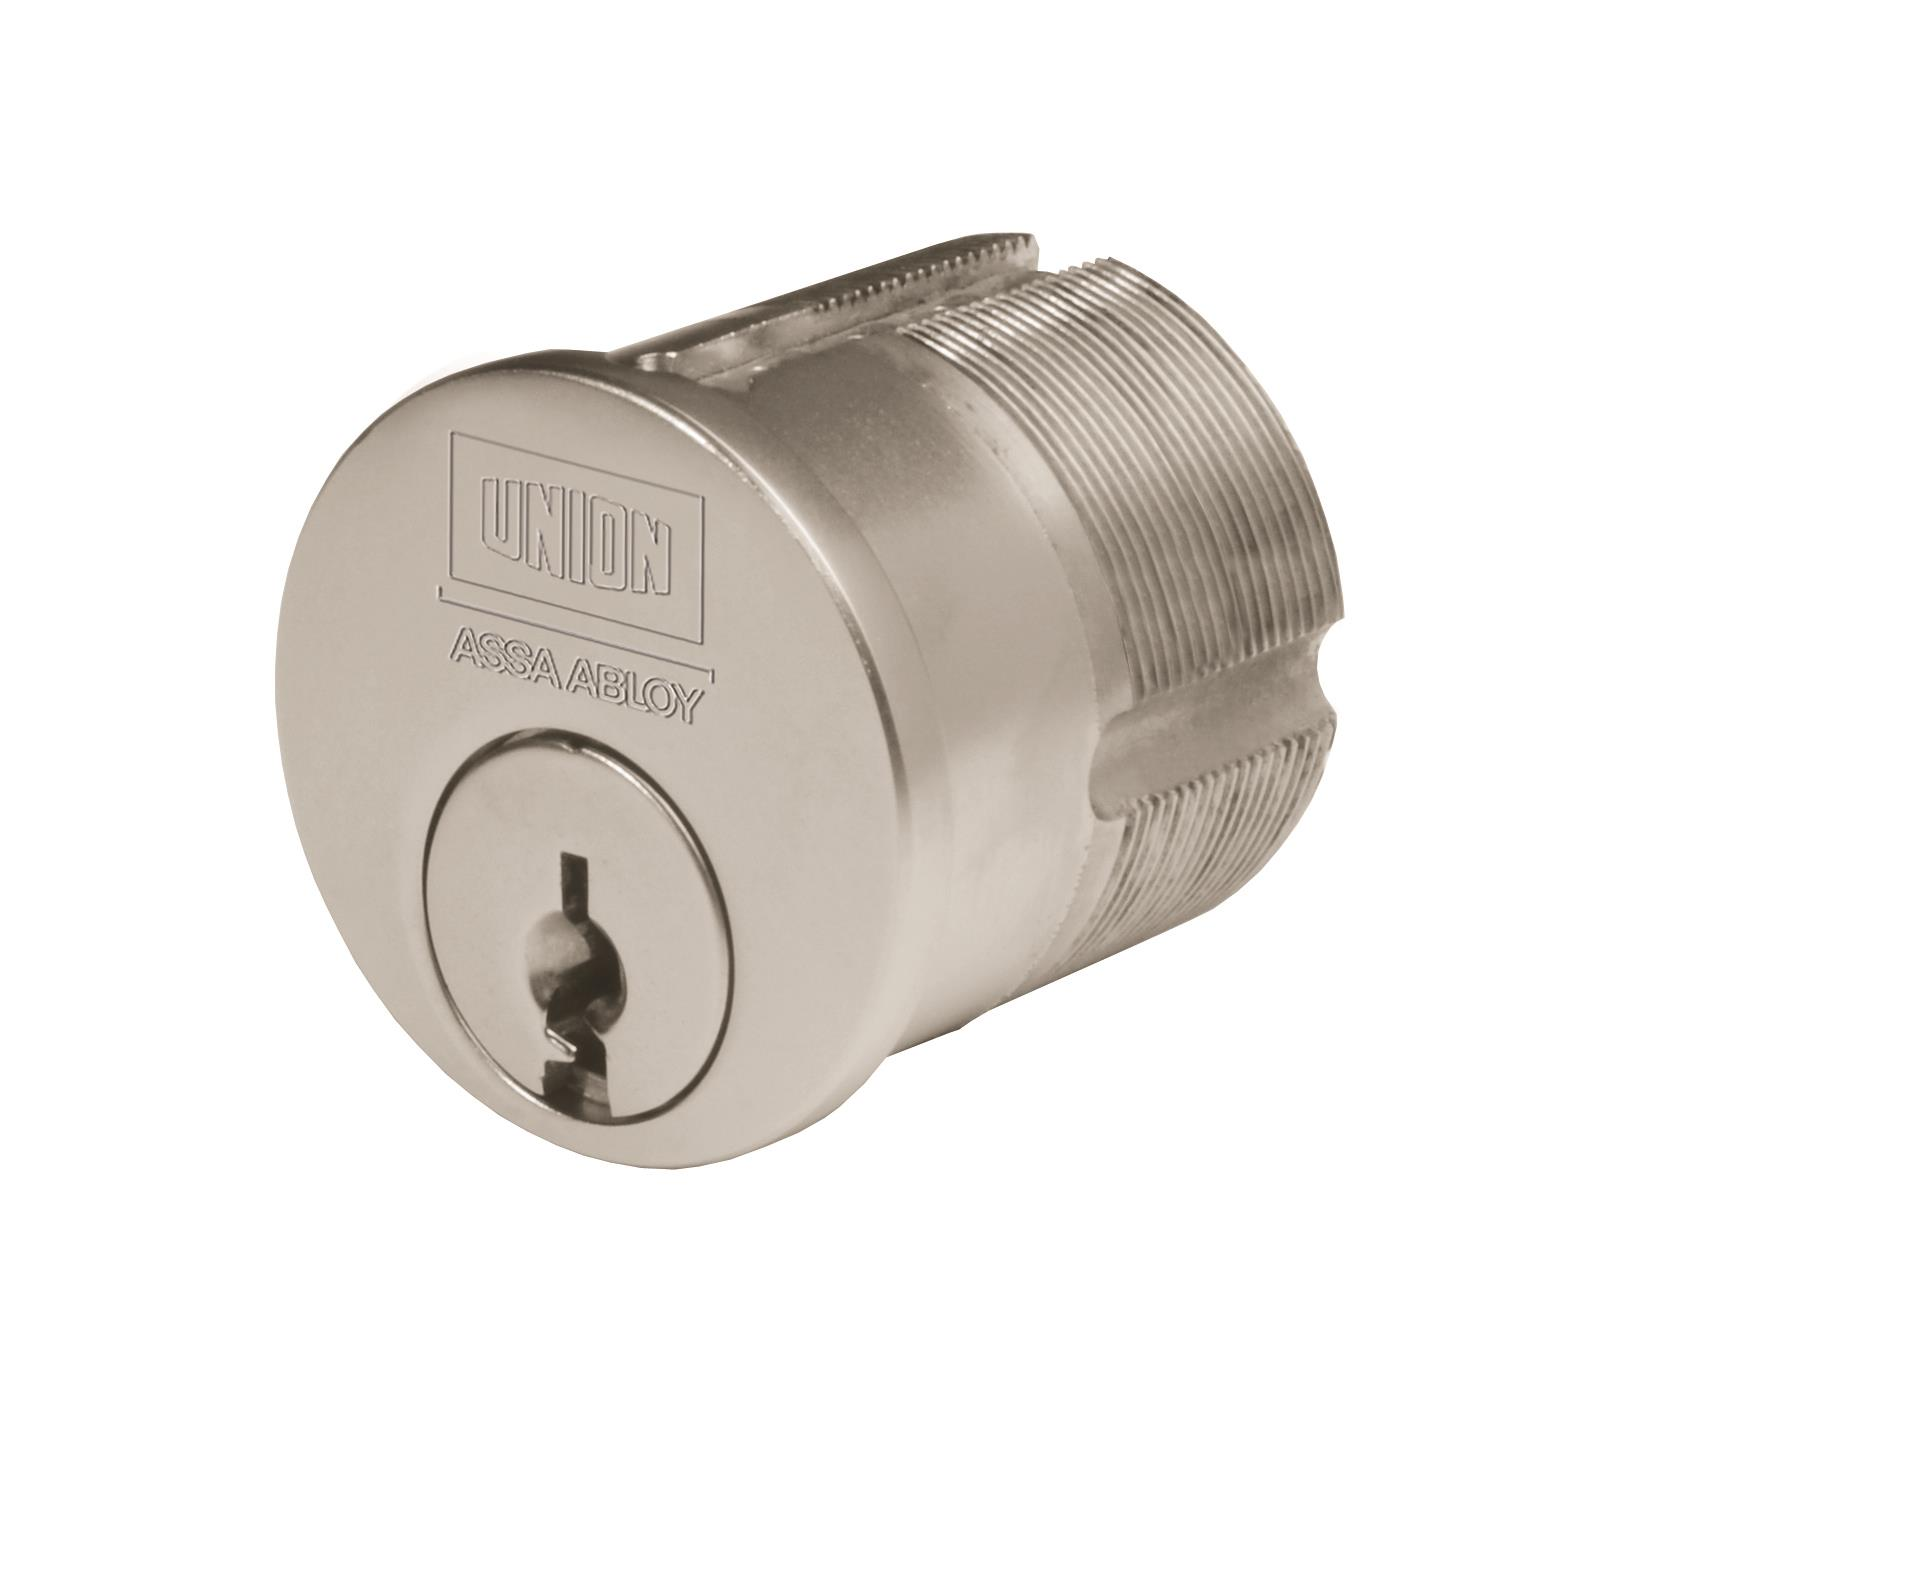 J-KUSCREWINSC - KeyULTRA Mortice Screw-in Cylinder